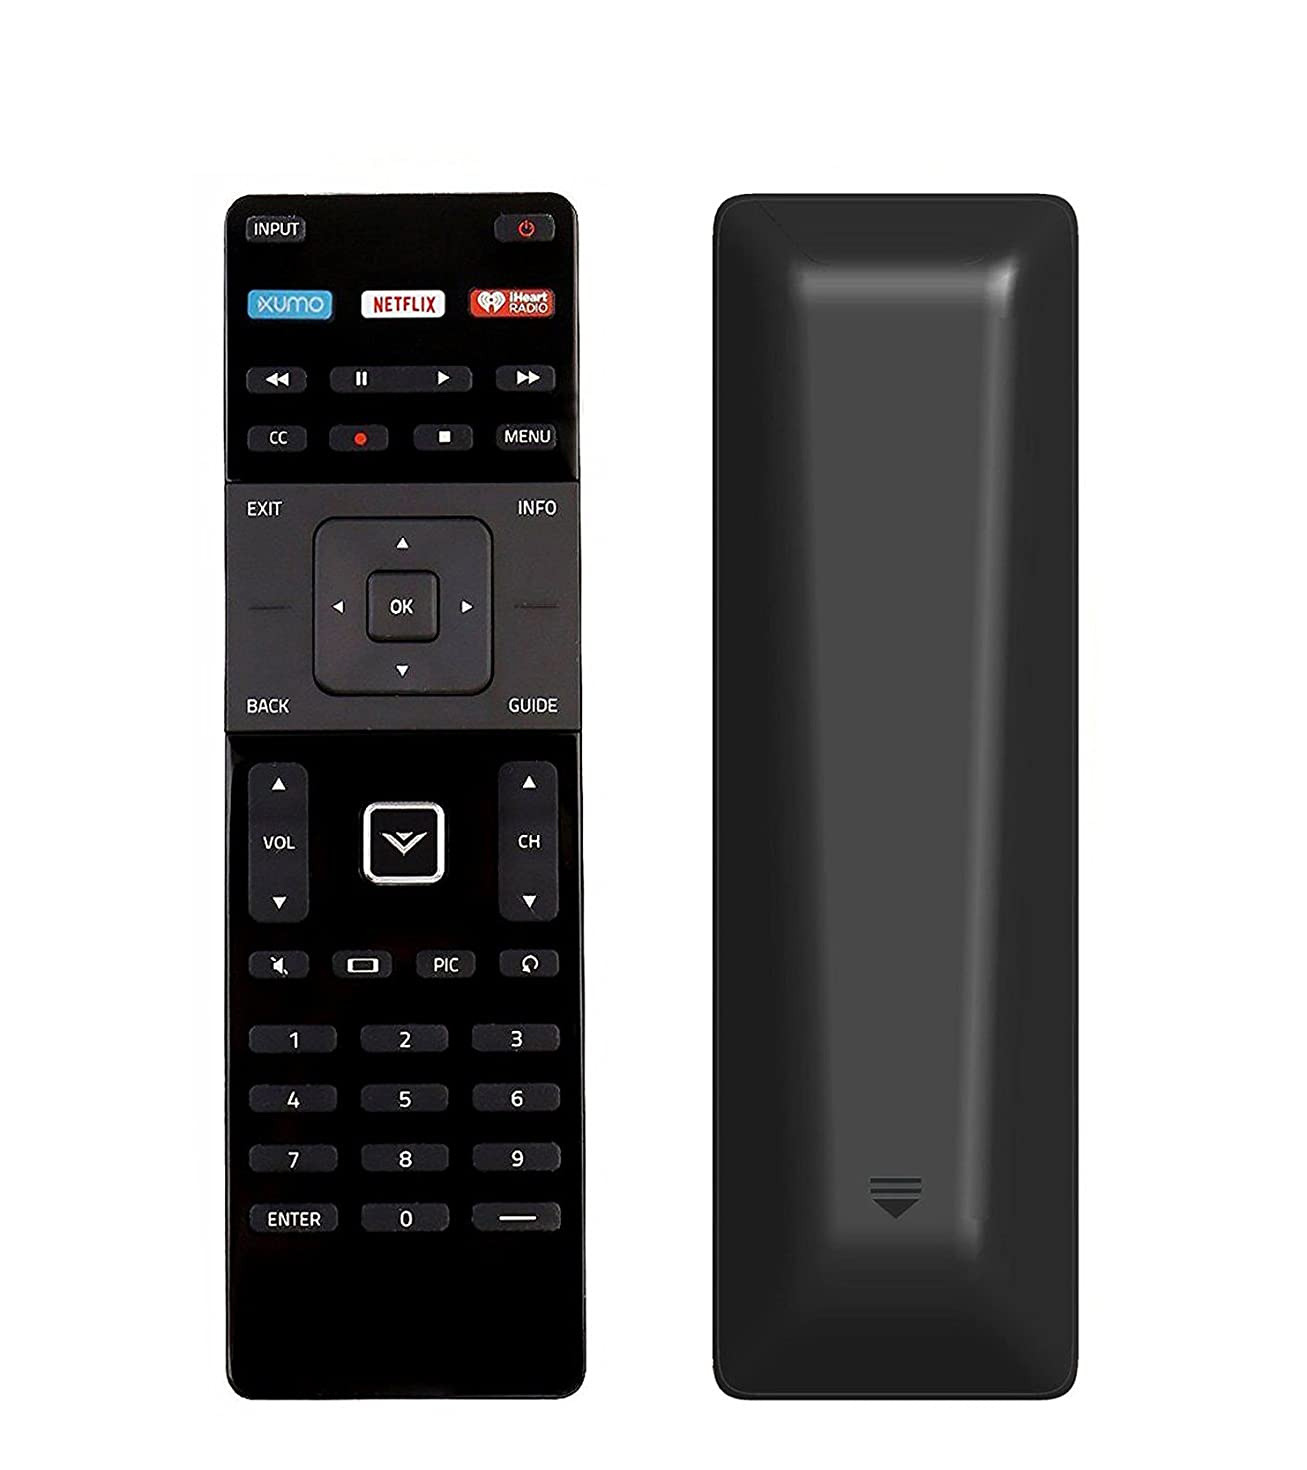 AULCMEET XRT122 Remote Control Compatible with VIZIO Smart TV D32f-E1 D39f-E1 D43f-E1 D43f-E2 D48f-E0 D50f-E1 D55f-E0 D55f-E2 D40u-D1 D50u-D1 D55u-D1 D24-D1 D28h-D1 D32-D1 D32h-D1 D32x-D1 D43-D2